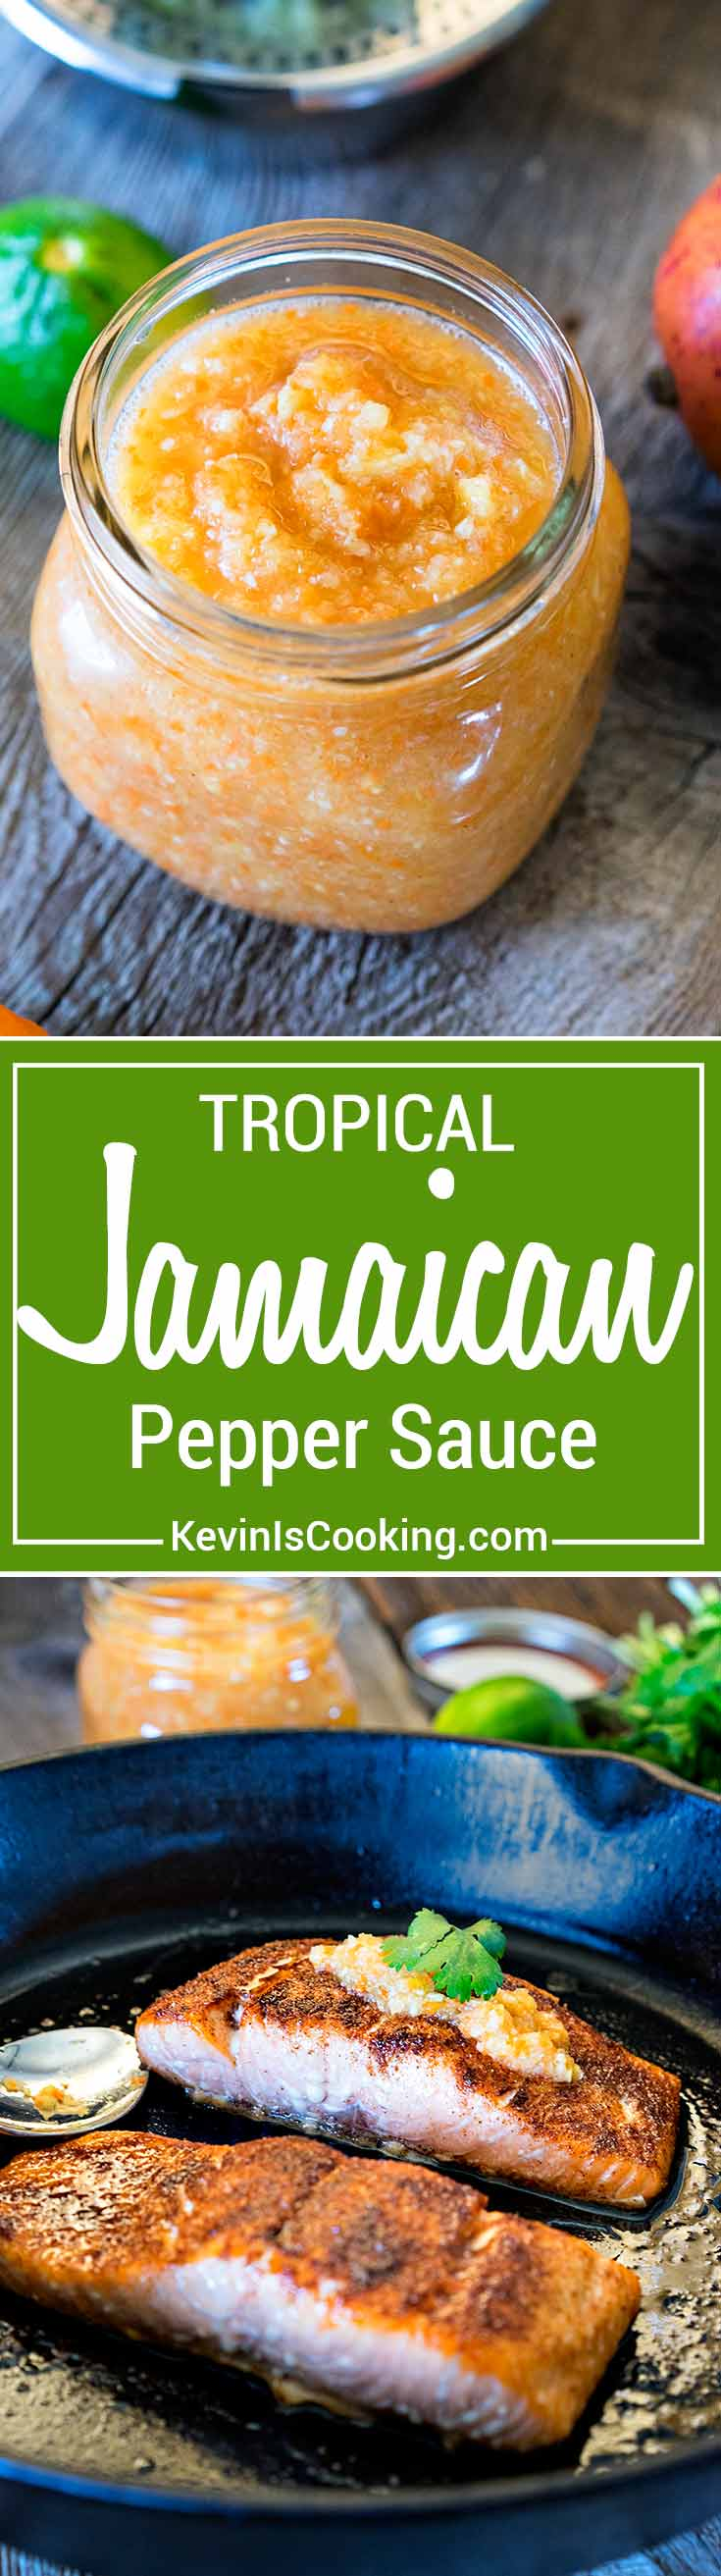 ThisJamaican Pepper Sauce brings the heat with habaneros, mango, pineapple and cumin, but the secret flavor weapon ingredient I like to add is a carrot.